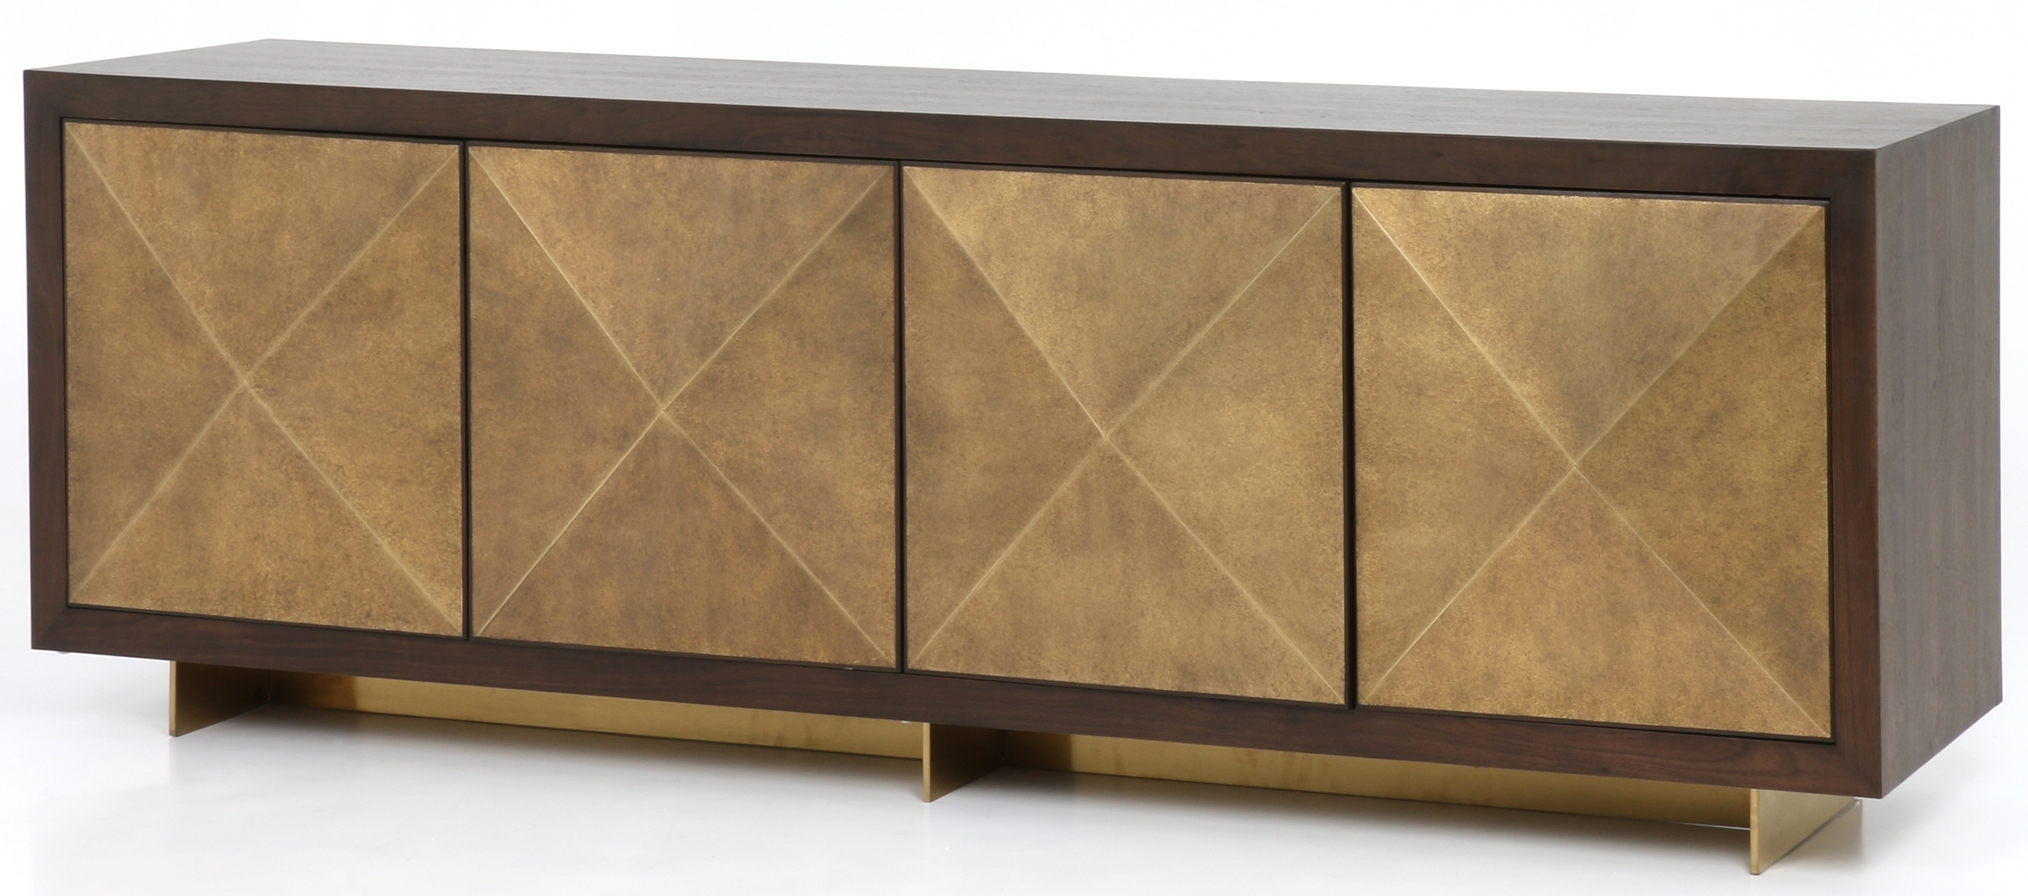 Cabinets, Consoles & Sofa Tables | Htgt Furniture For Most Popular Gunmetal Perforated Brass Sideboards (#5 of 20)